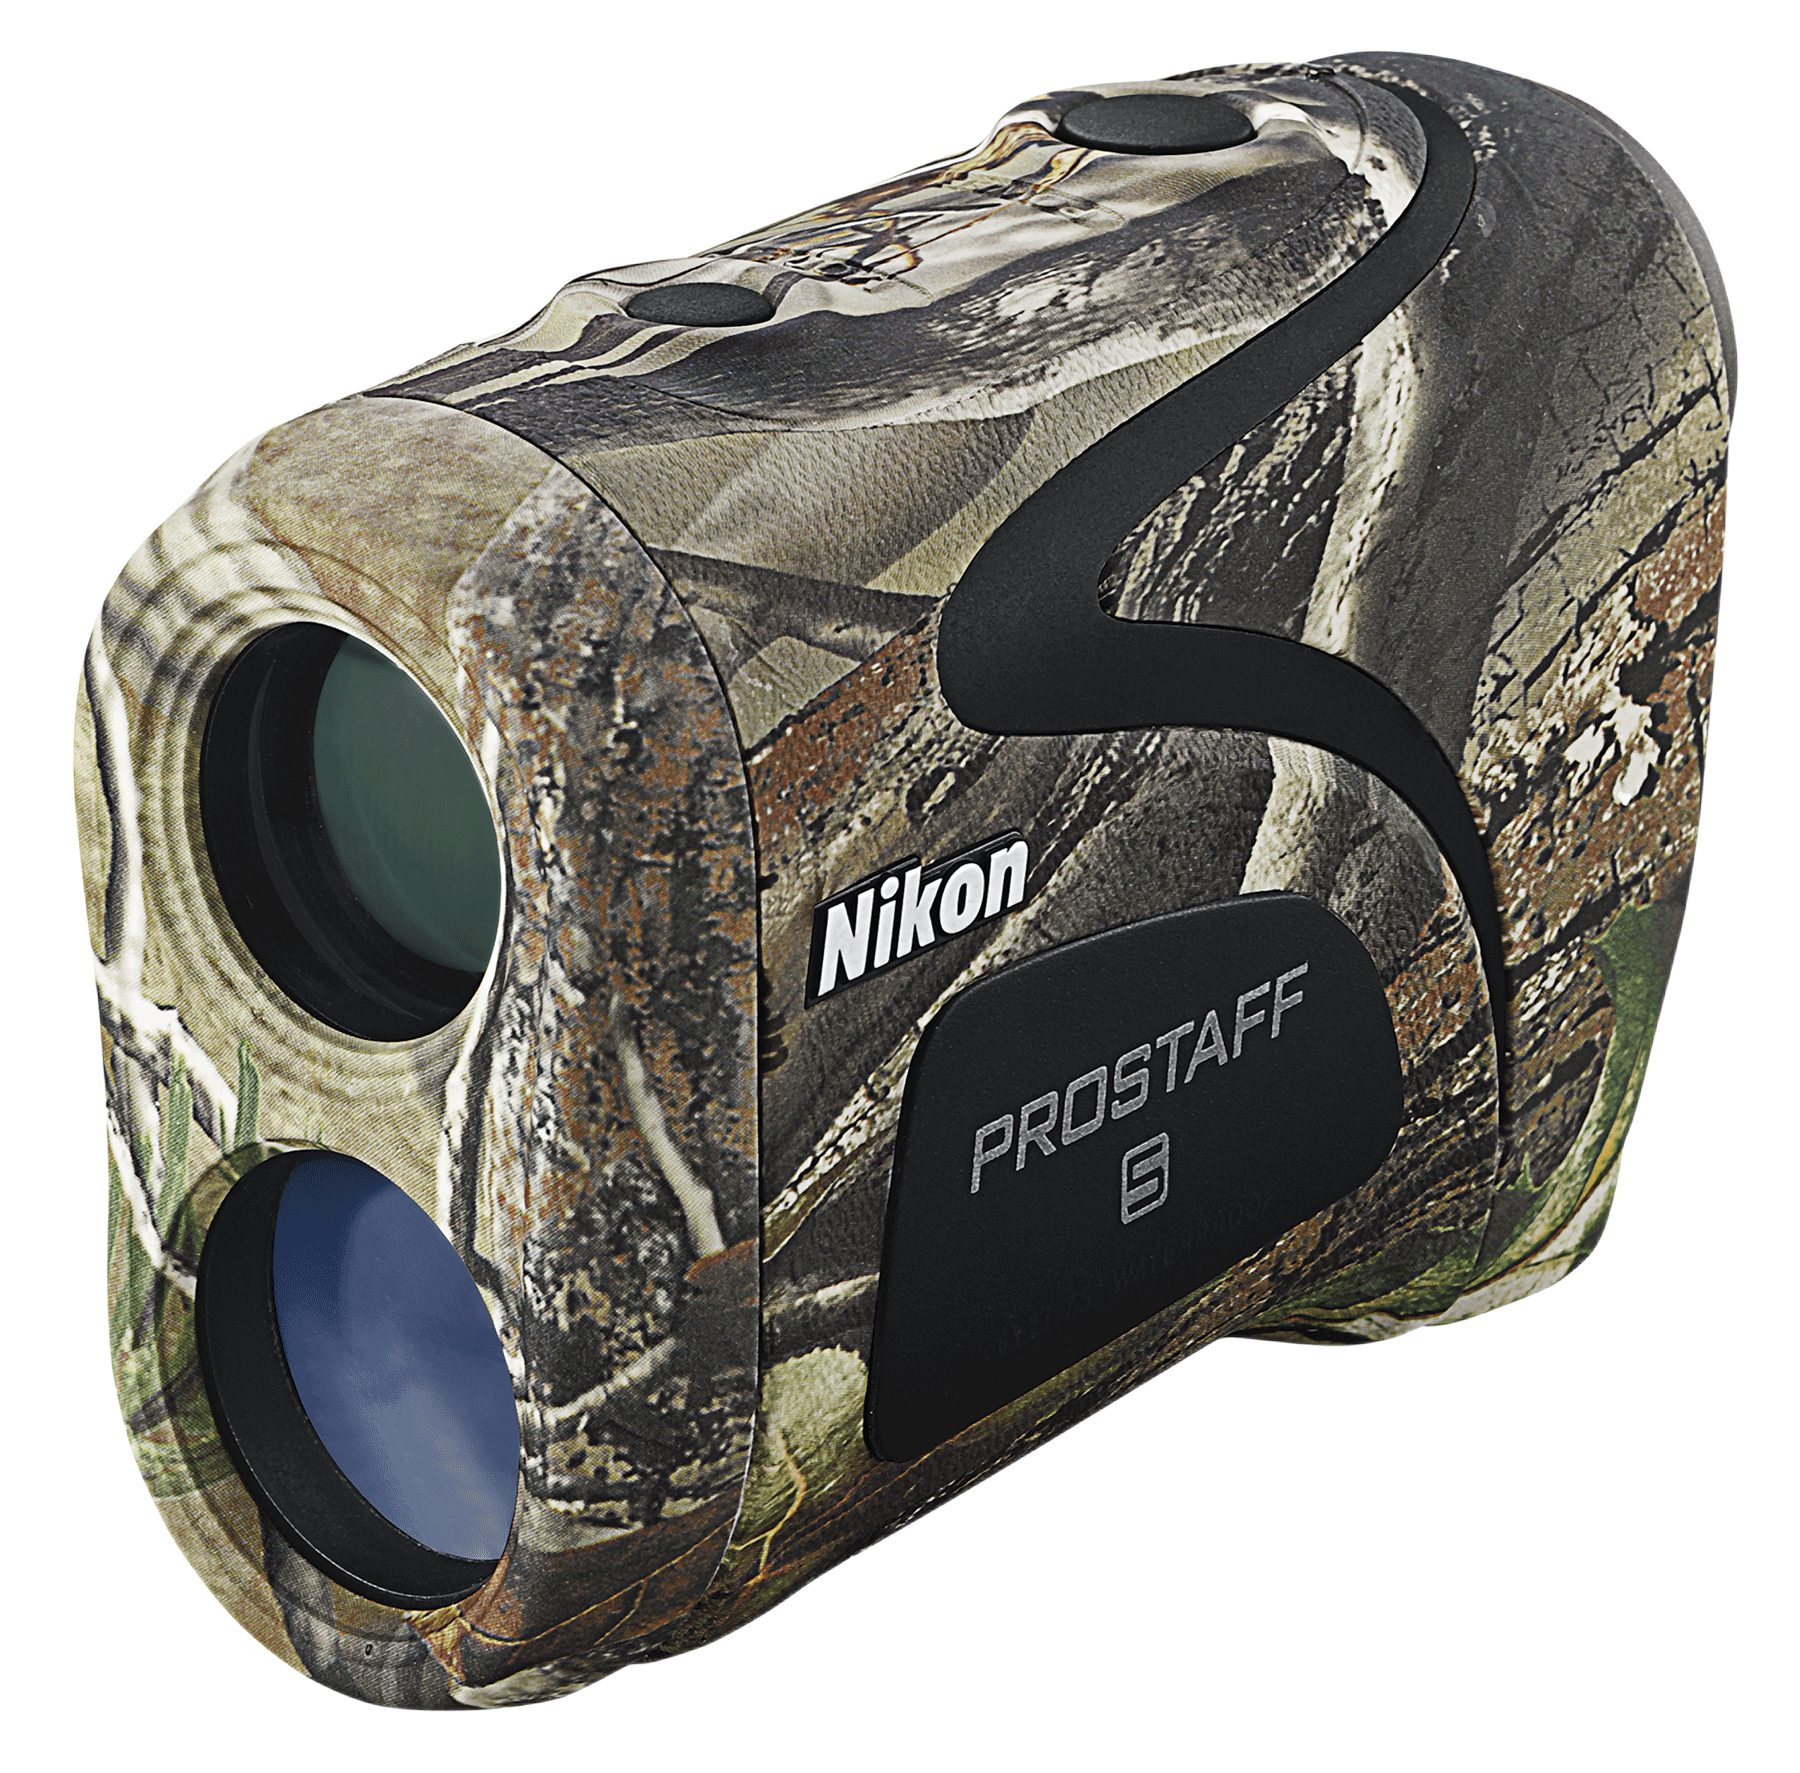 Nikon 8389 Prostaff 5 6x 21mm 7.5 degree FOV 18.3mm Realtree AP